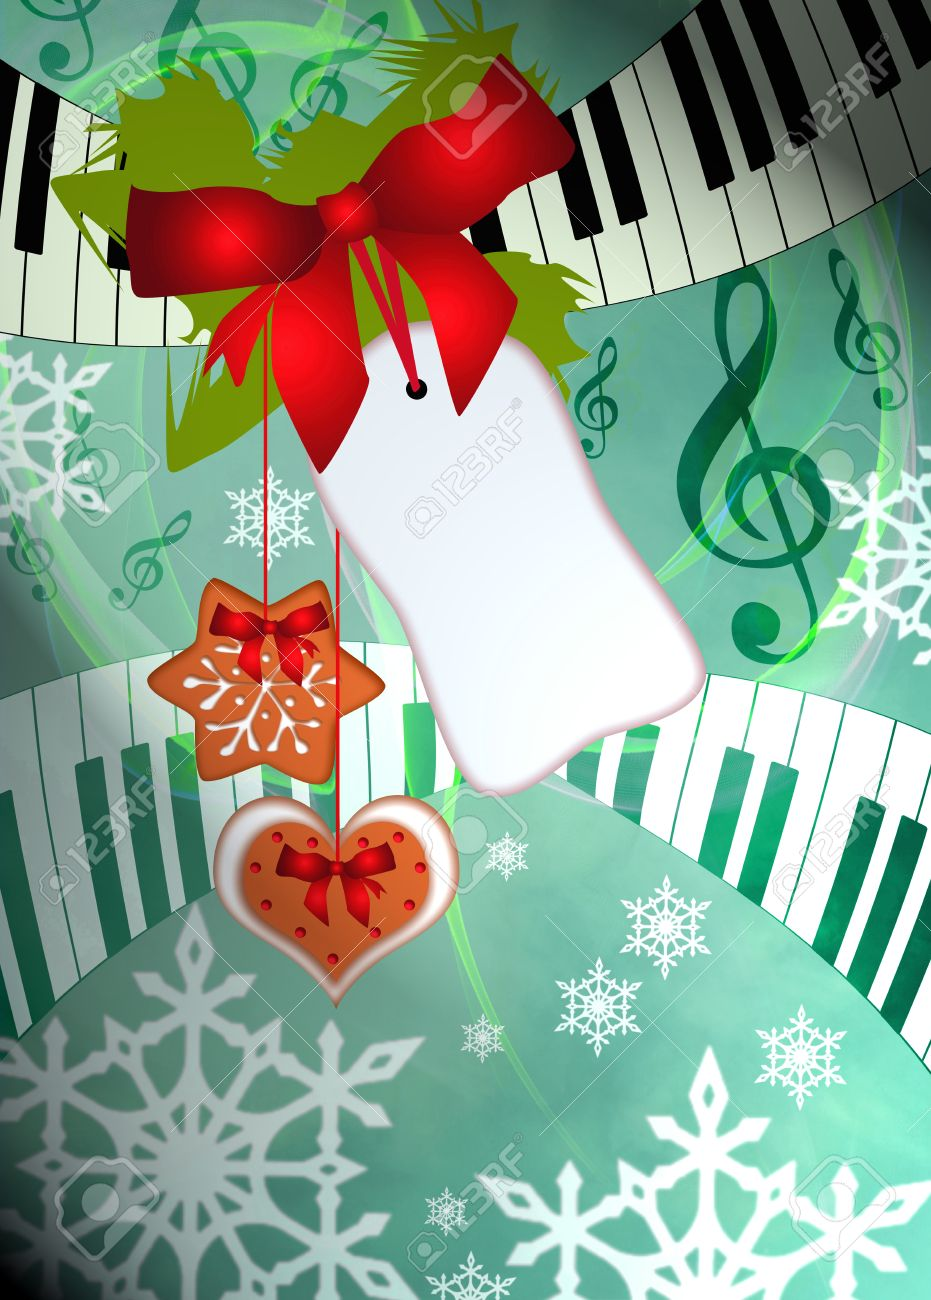 advent or christmas music concenrt advert poster or flyer advent or christmas music concenrt advert poster or flyer background empty space stock photo